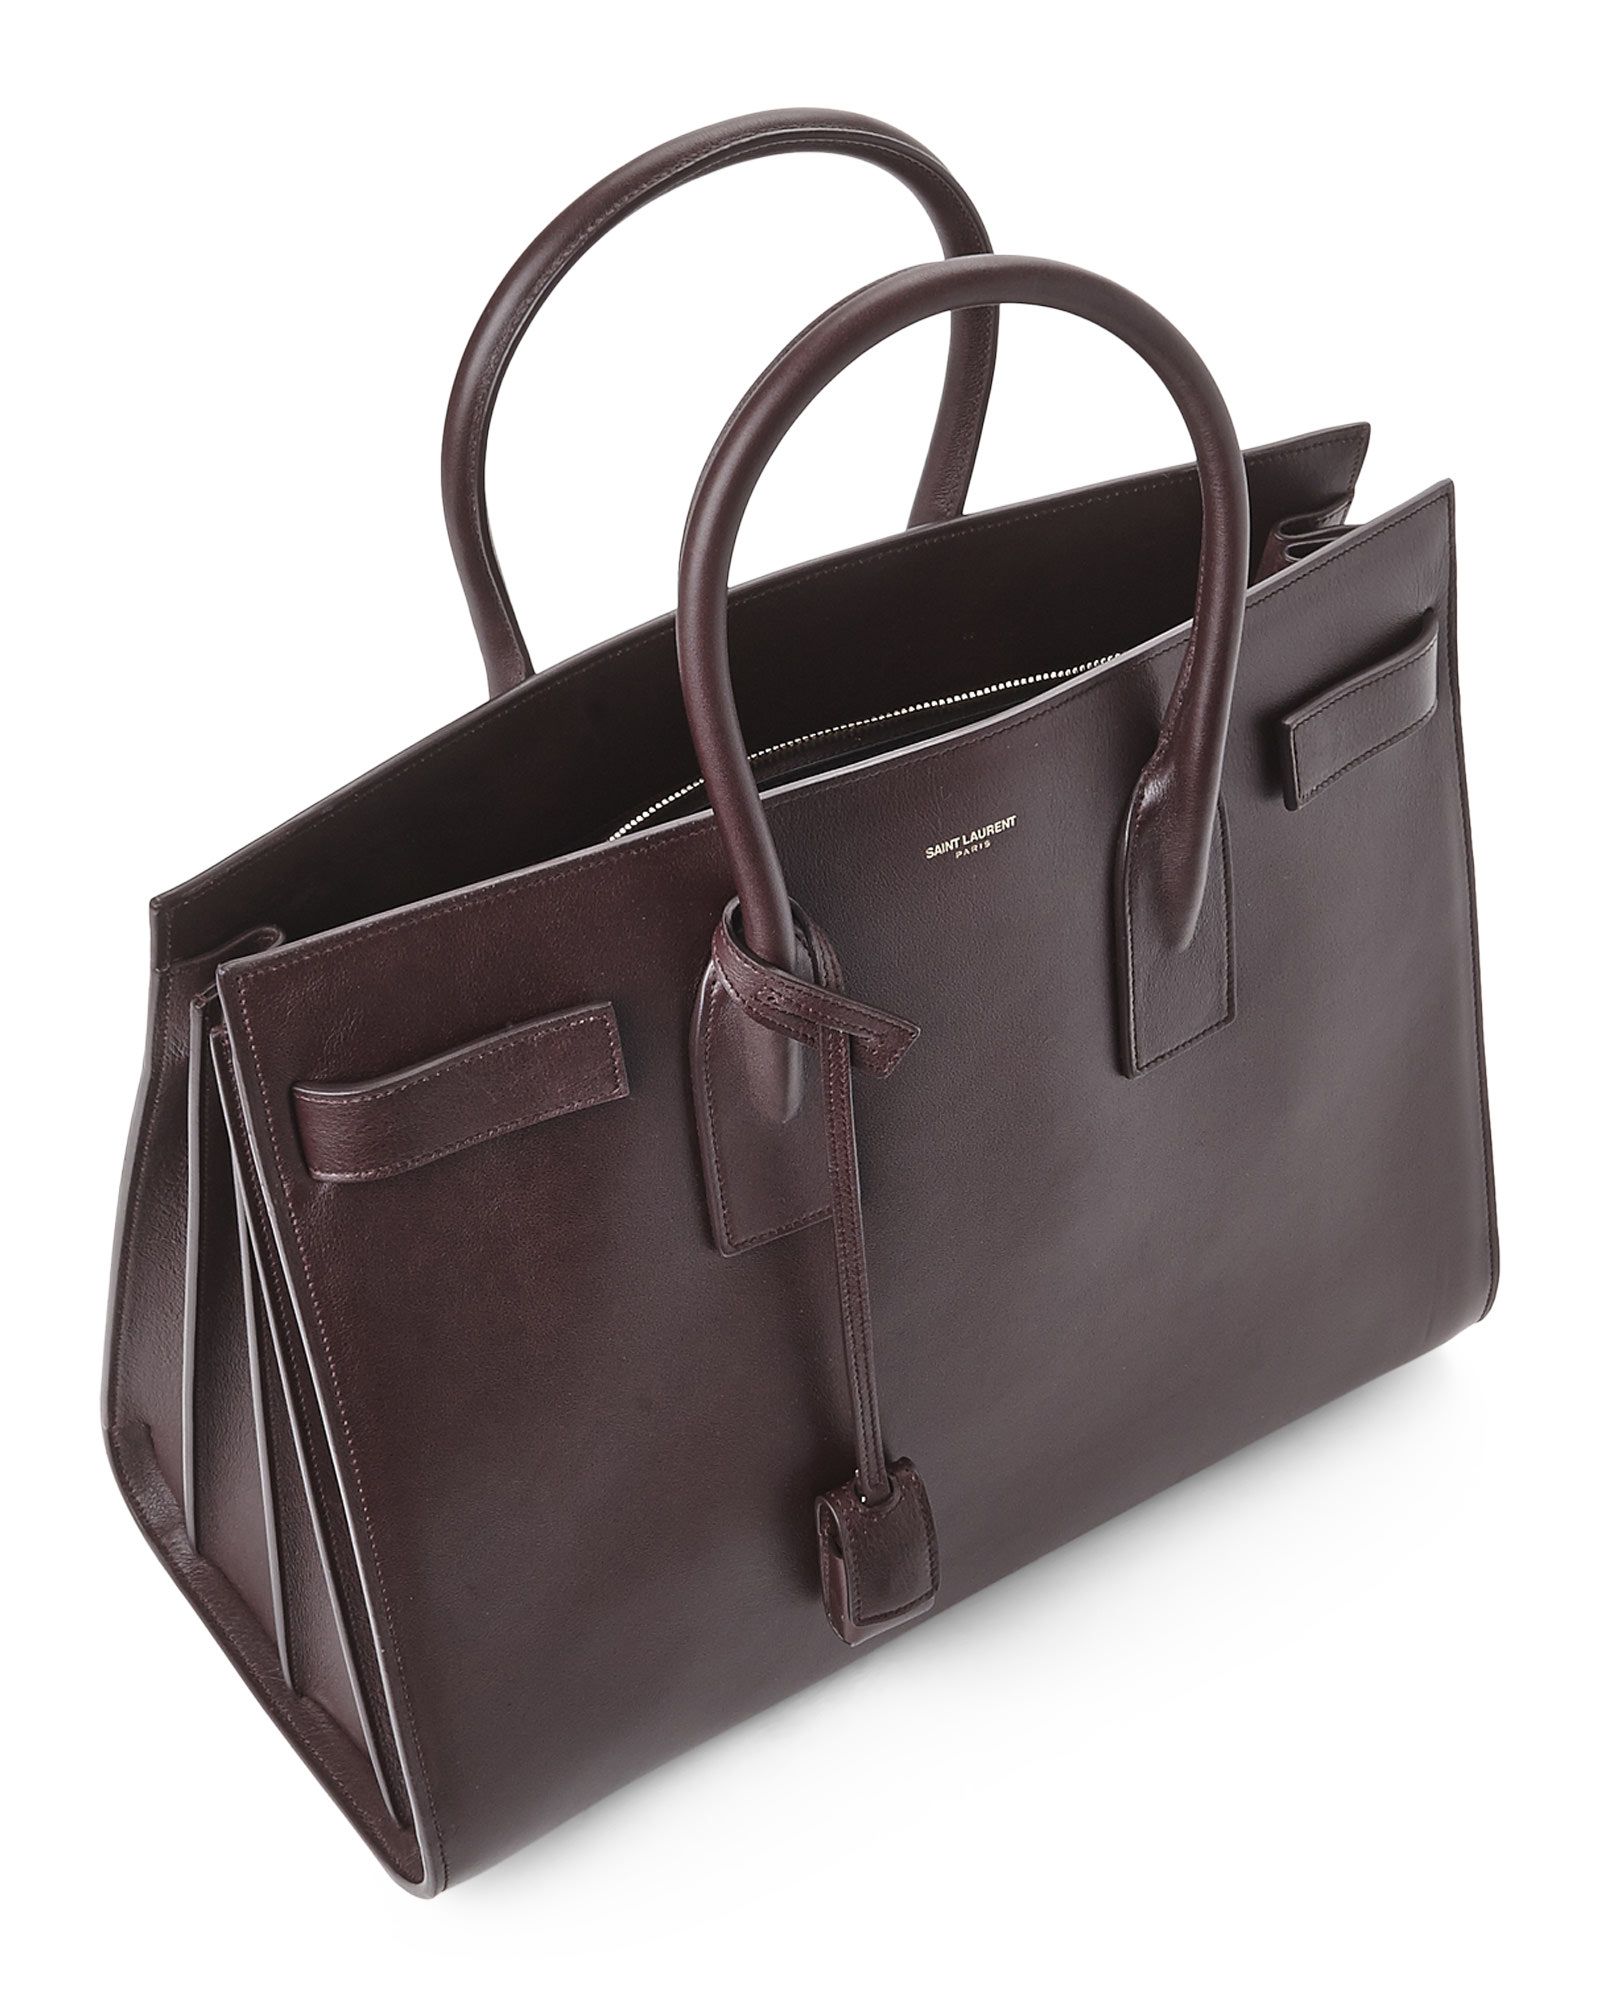 29302631c8 Saint Laurent Purple Bordeaux Large Sac De Jour Bag